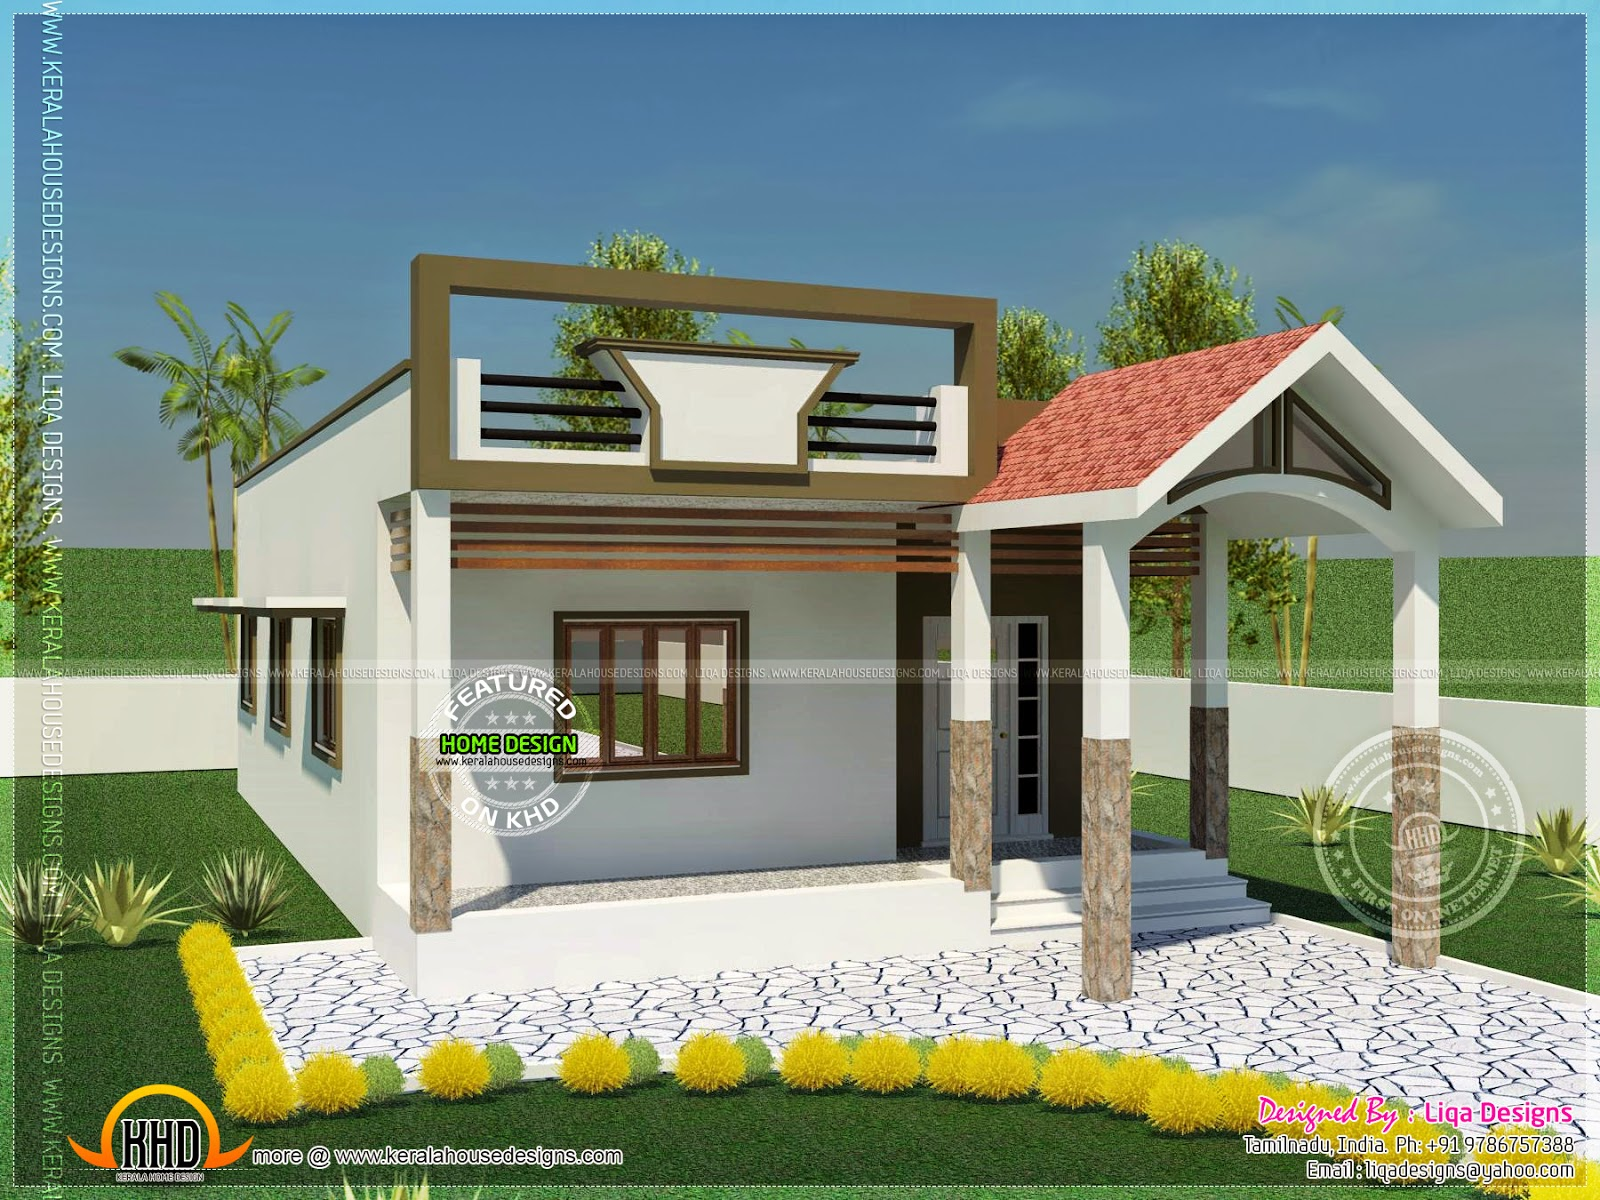 740 Square Feet Single Storied House Kerala Home Design